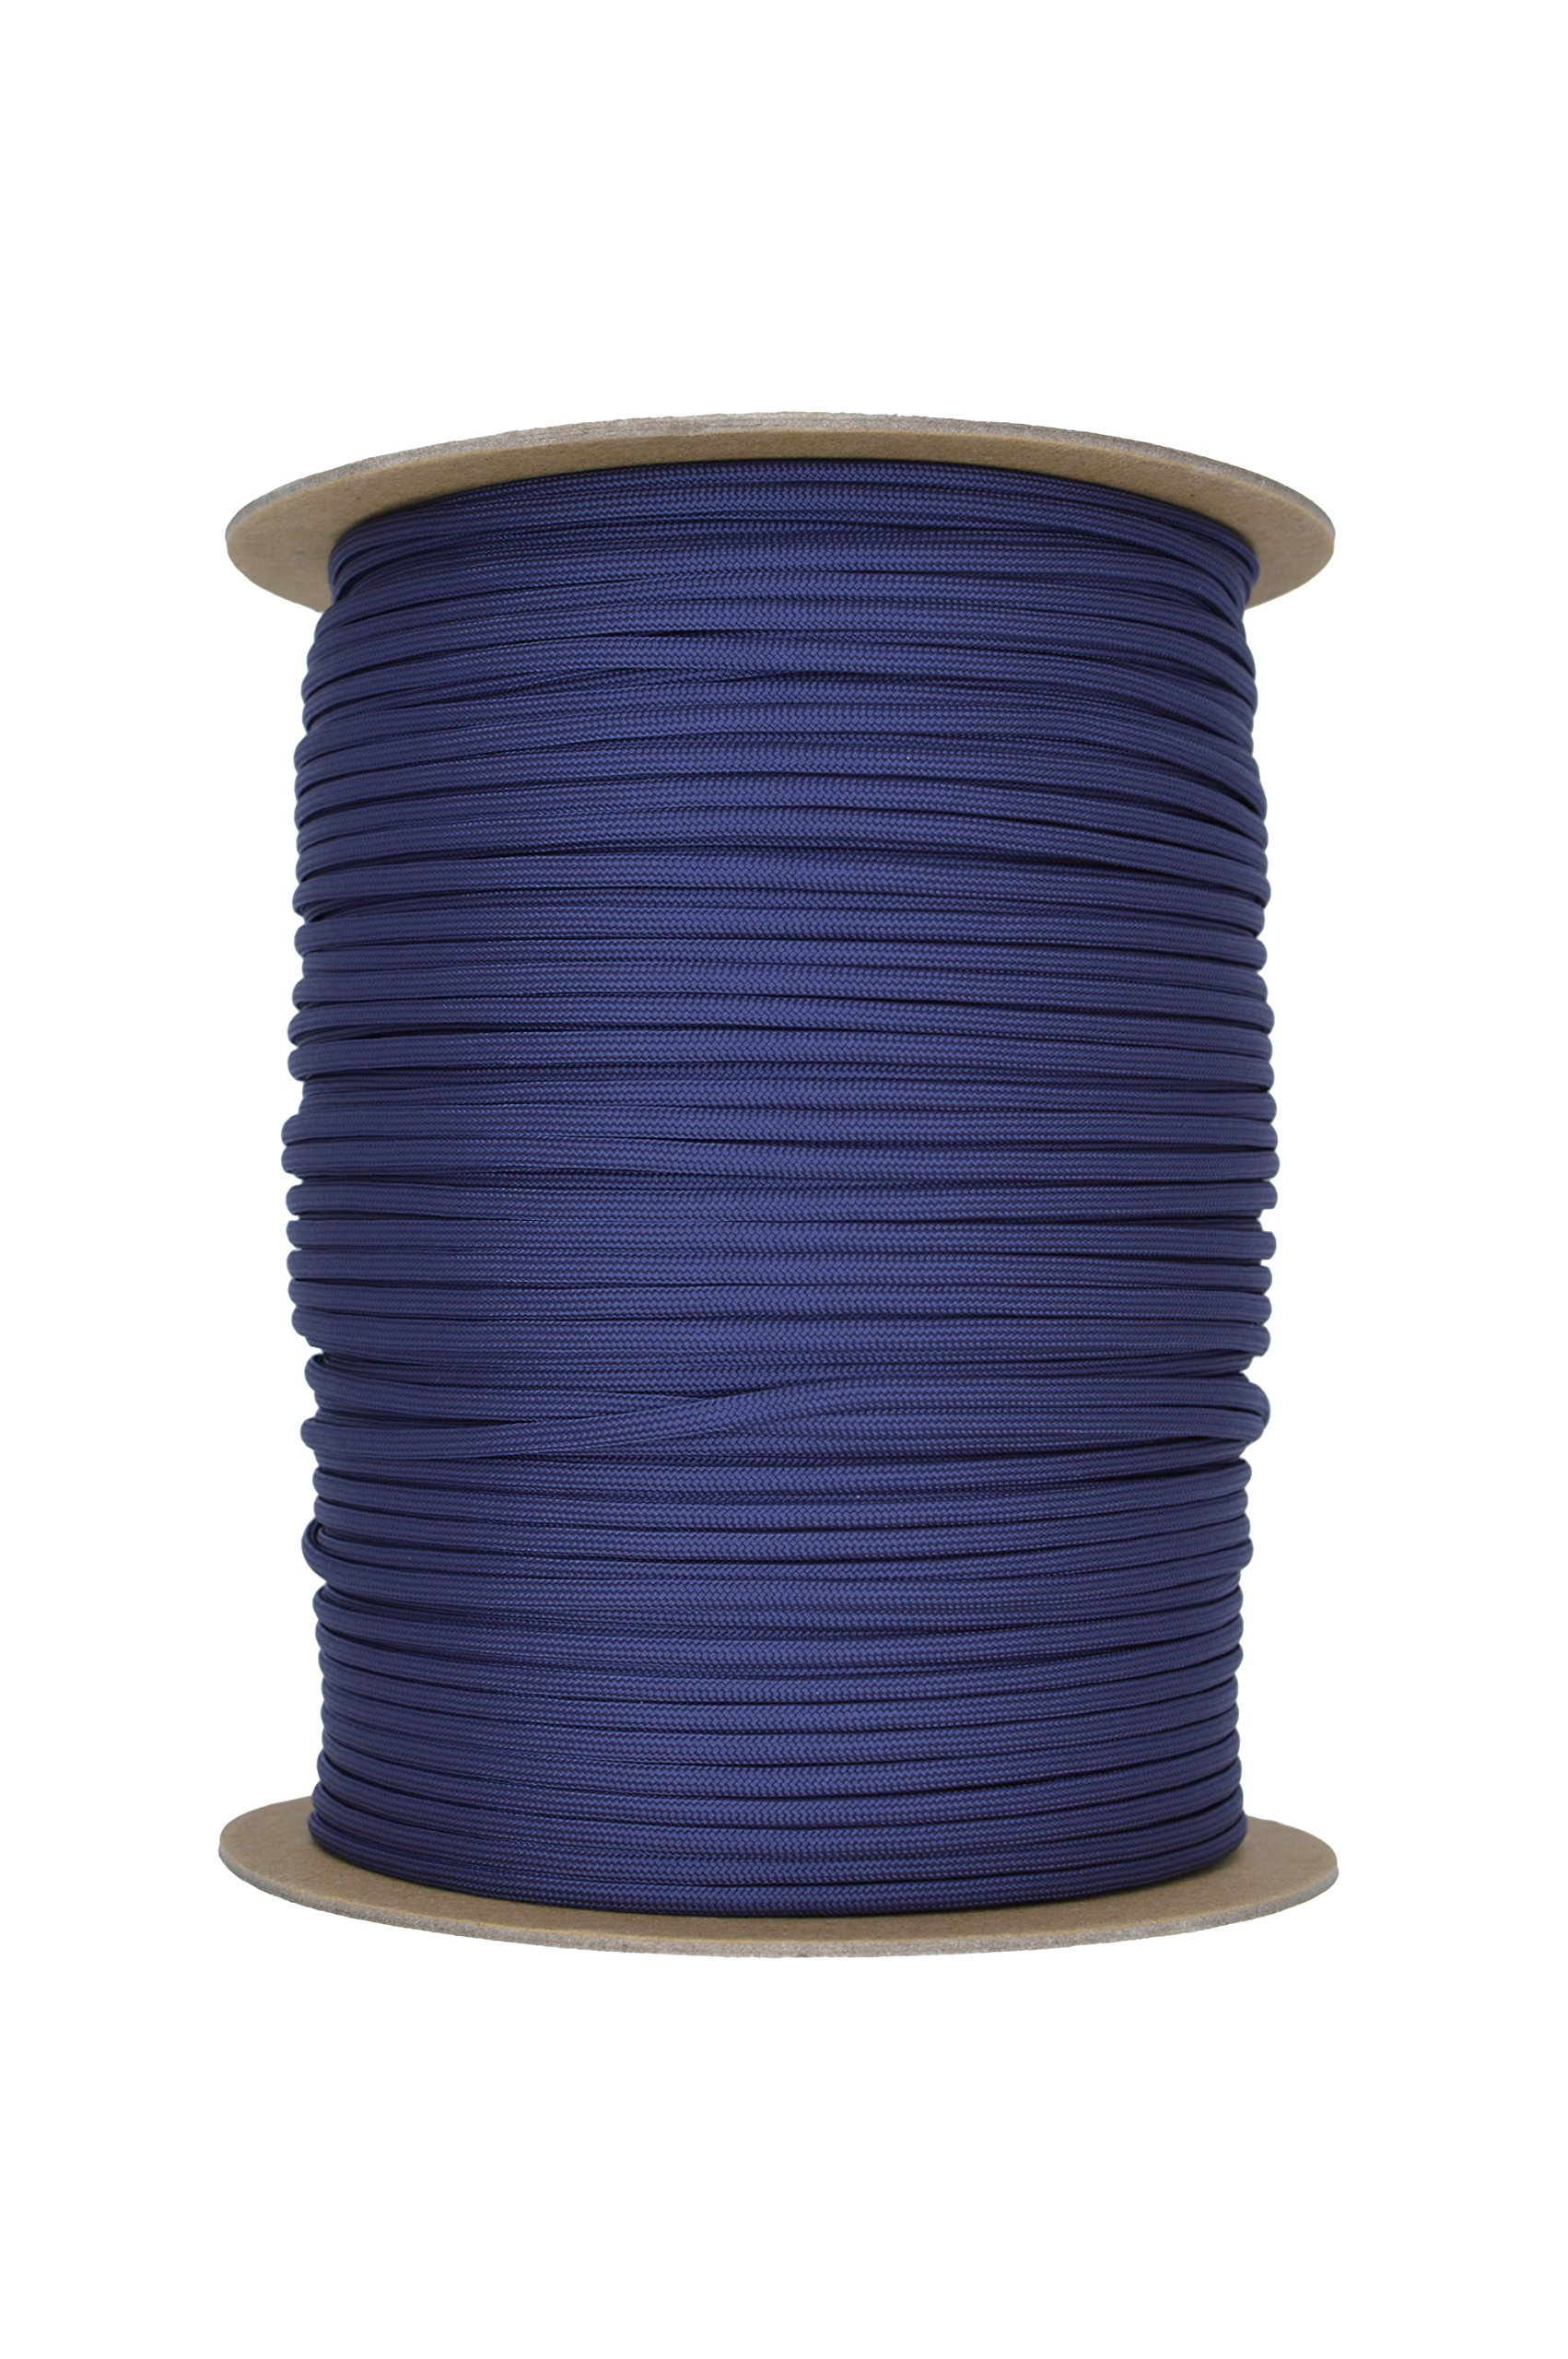 Paracord Rope 550 Type III Paracord - Parachute Cord - 550lb Tensile Strength - 100% Nylon - Made In The USA (Navy Blue, 100 Feet) by Paracord Rope (Image #3)